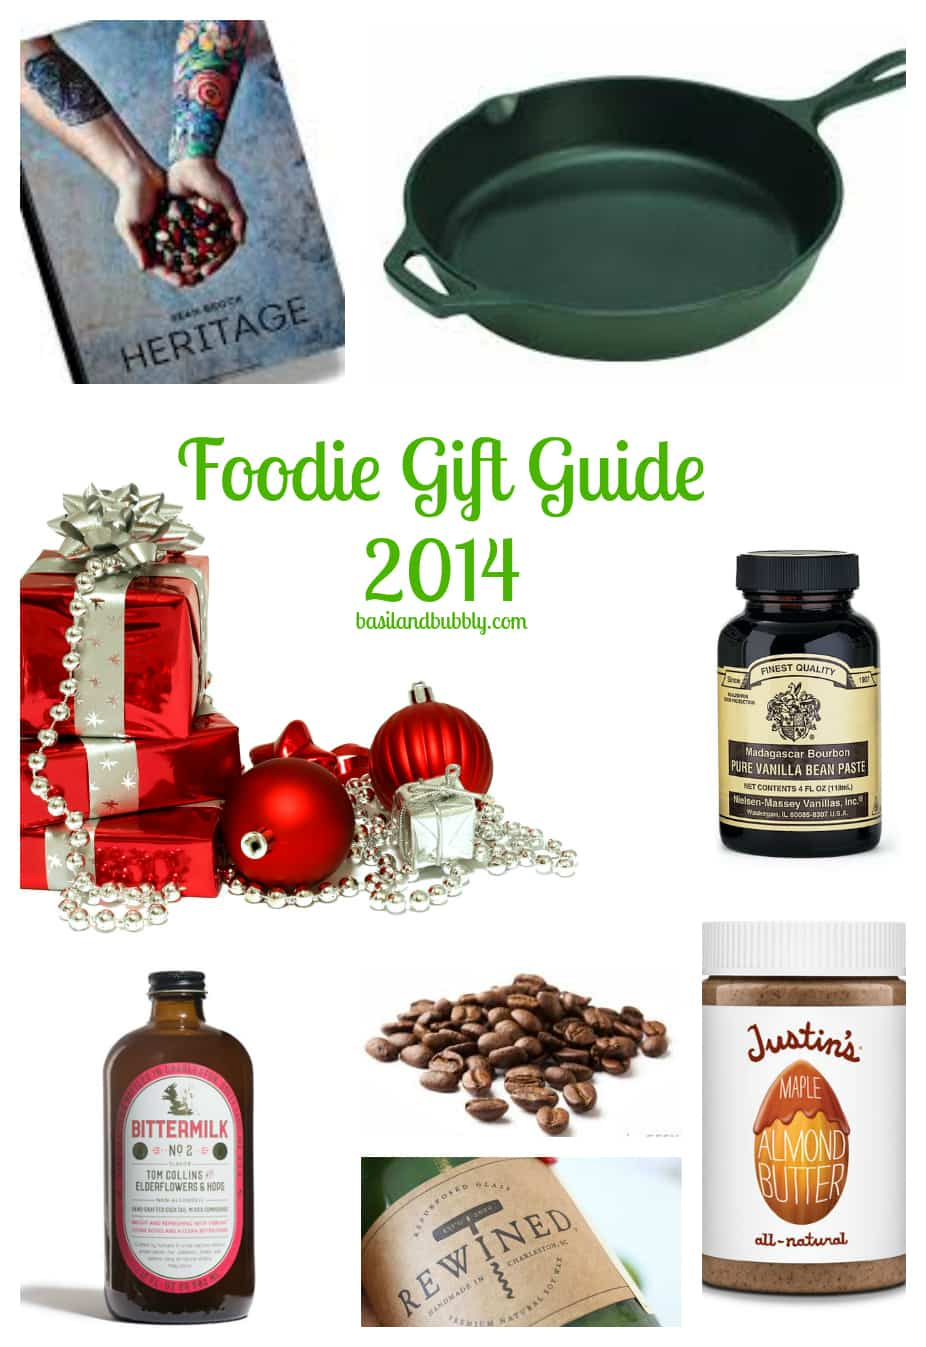 2014 Foodie Gift Guide